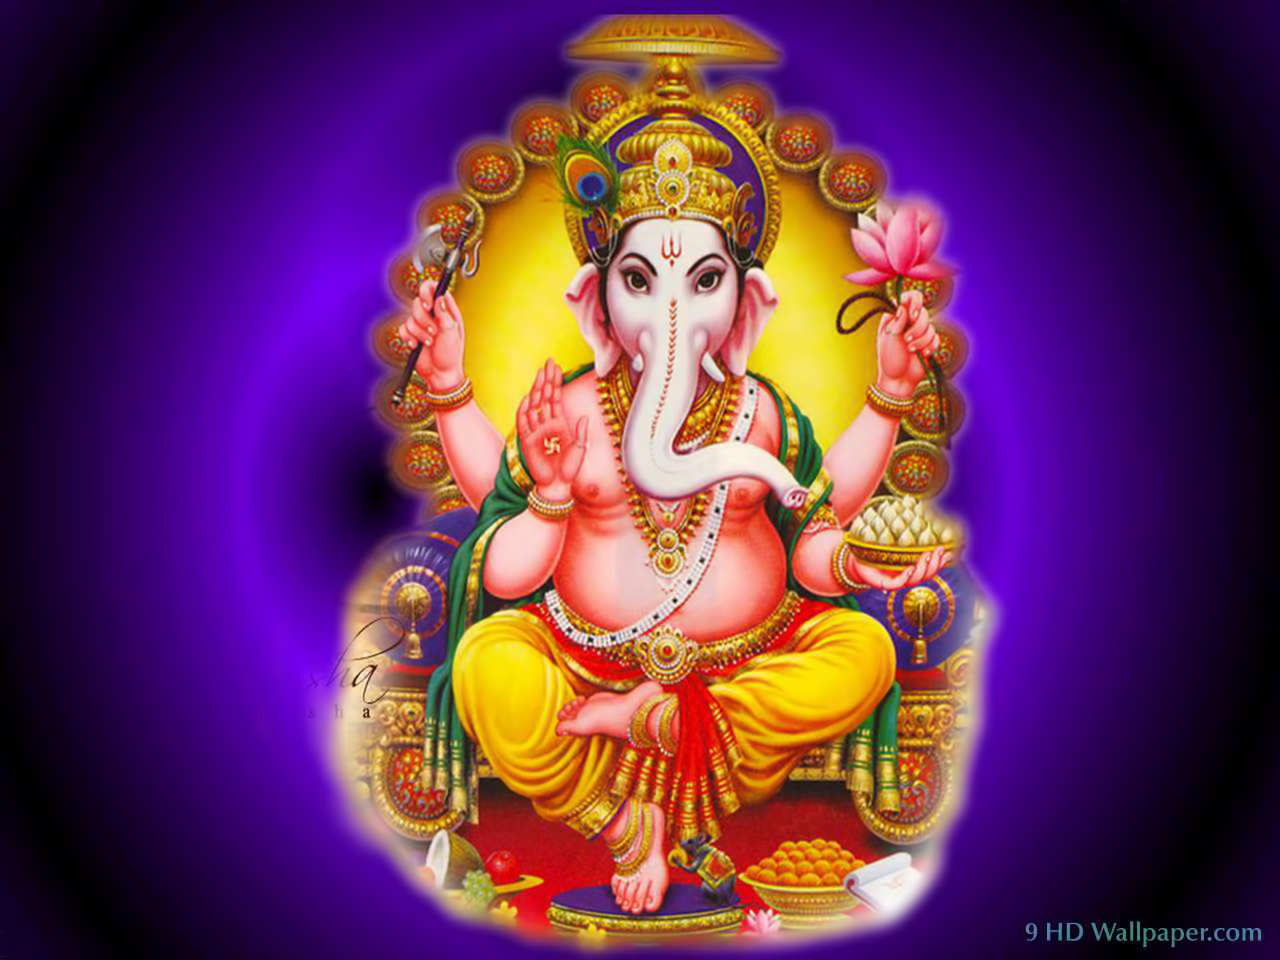 Shree Ganesh Hd Images: 25 Best Ganesha Wallpapers - Series 2